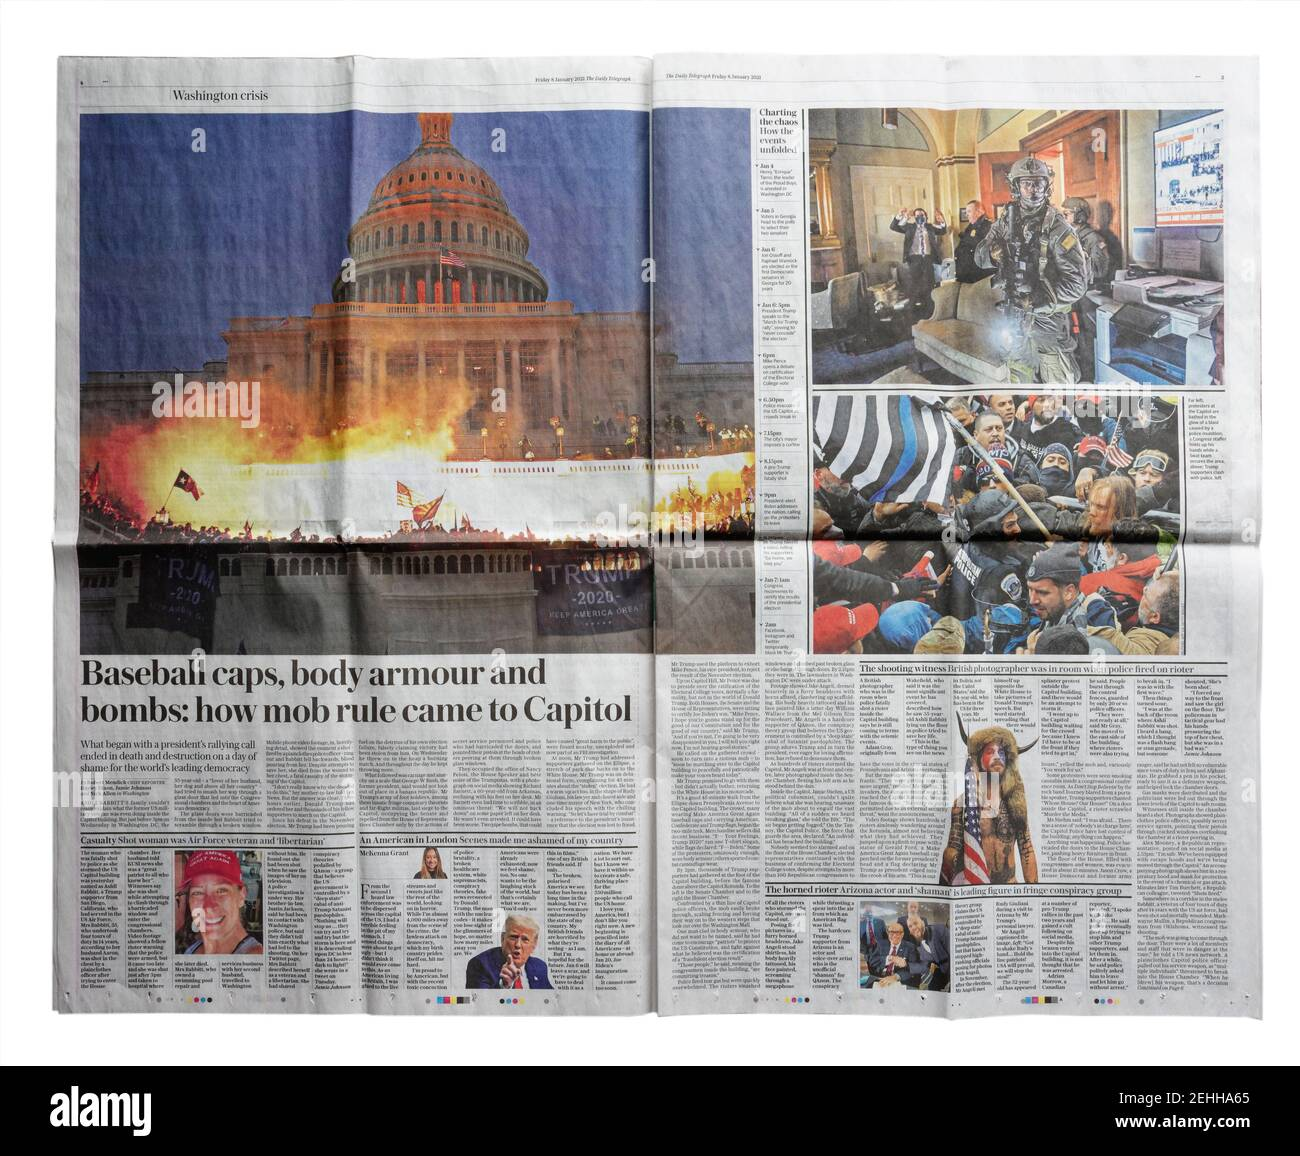 A double page spread of the Daily Telegraph newspaper  about the Capitol invasion of 6 January 2021 Stock Photo